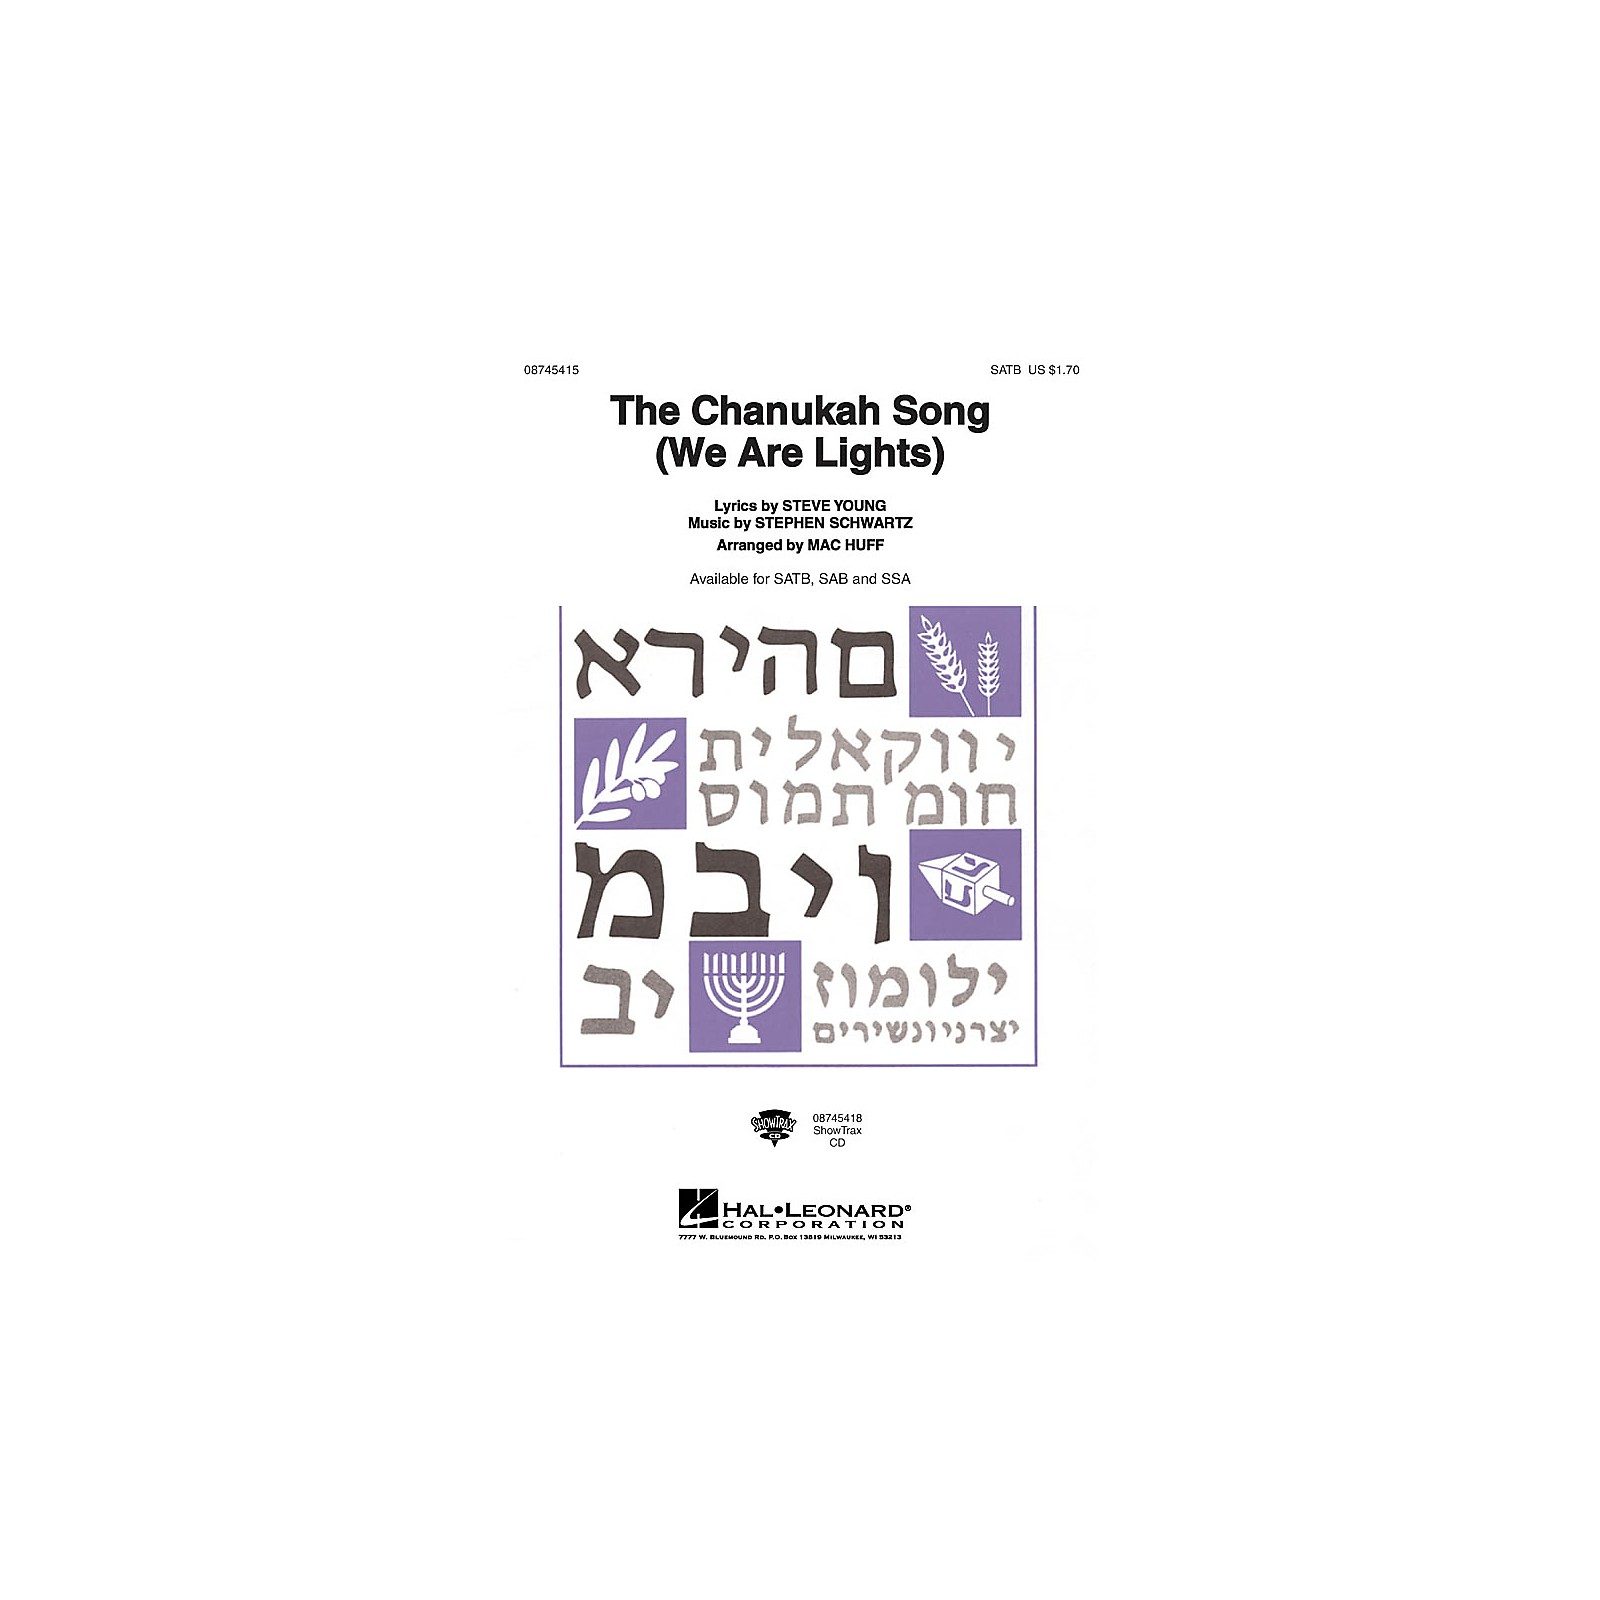 Hal Leonard The Chanukah Song (We Are Lights) SSA Arranged by Mac Huff